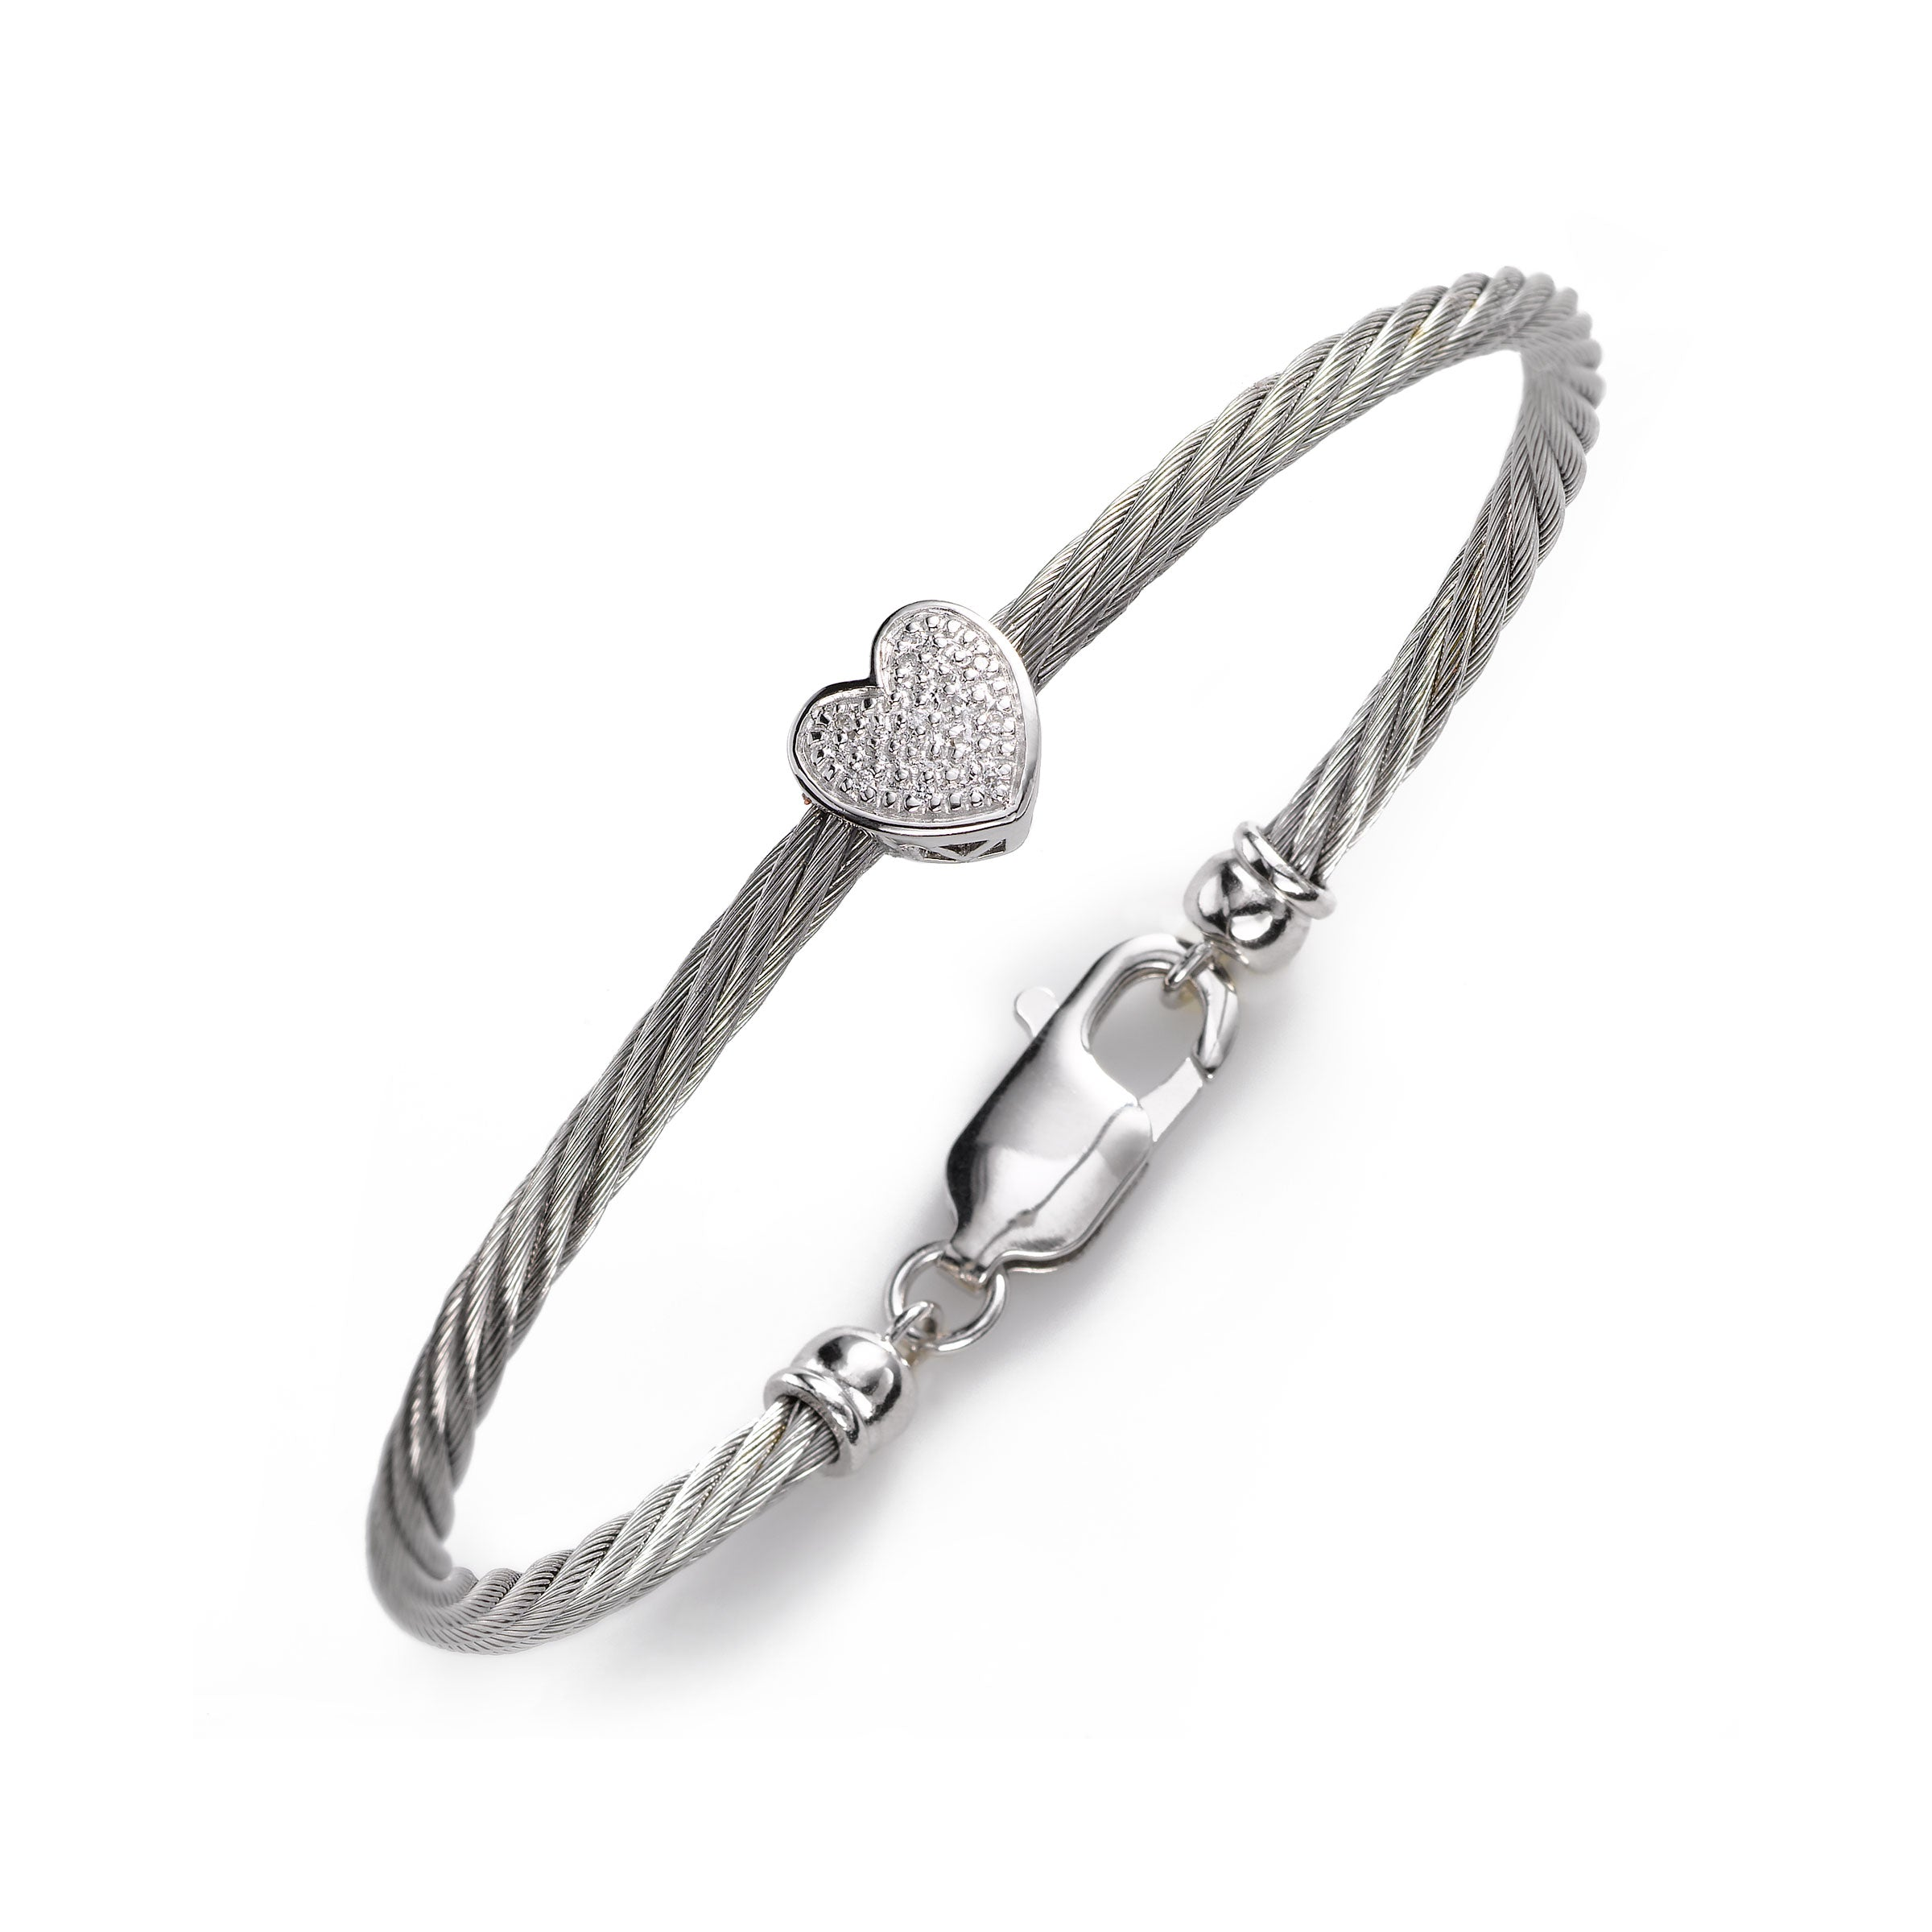 Child's Diamond Heart Bracelet, 5.50 Inches, Stainless and Silver